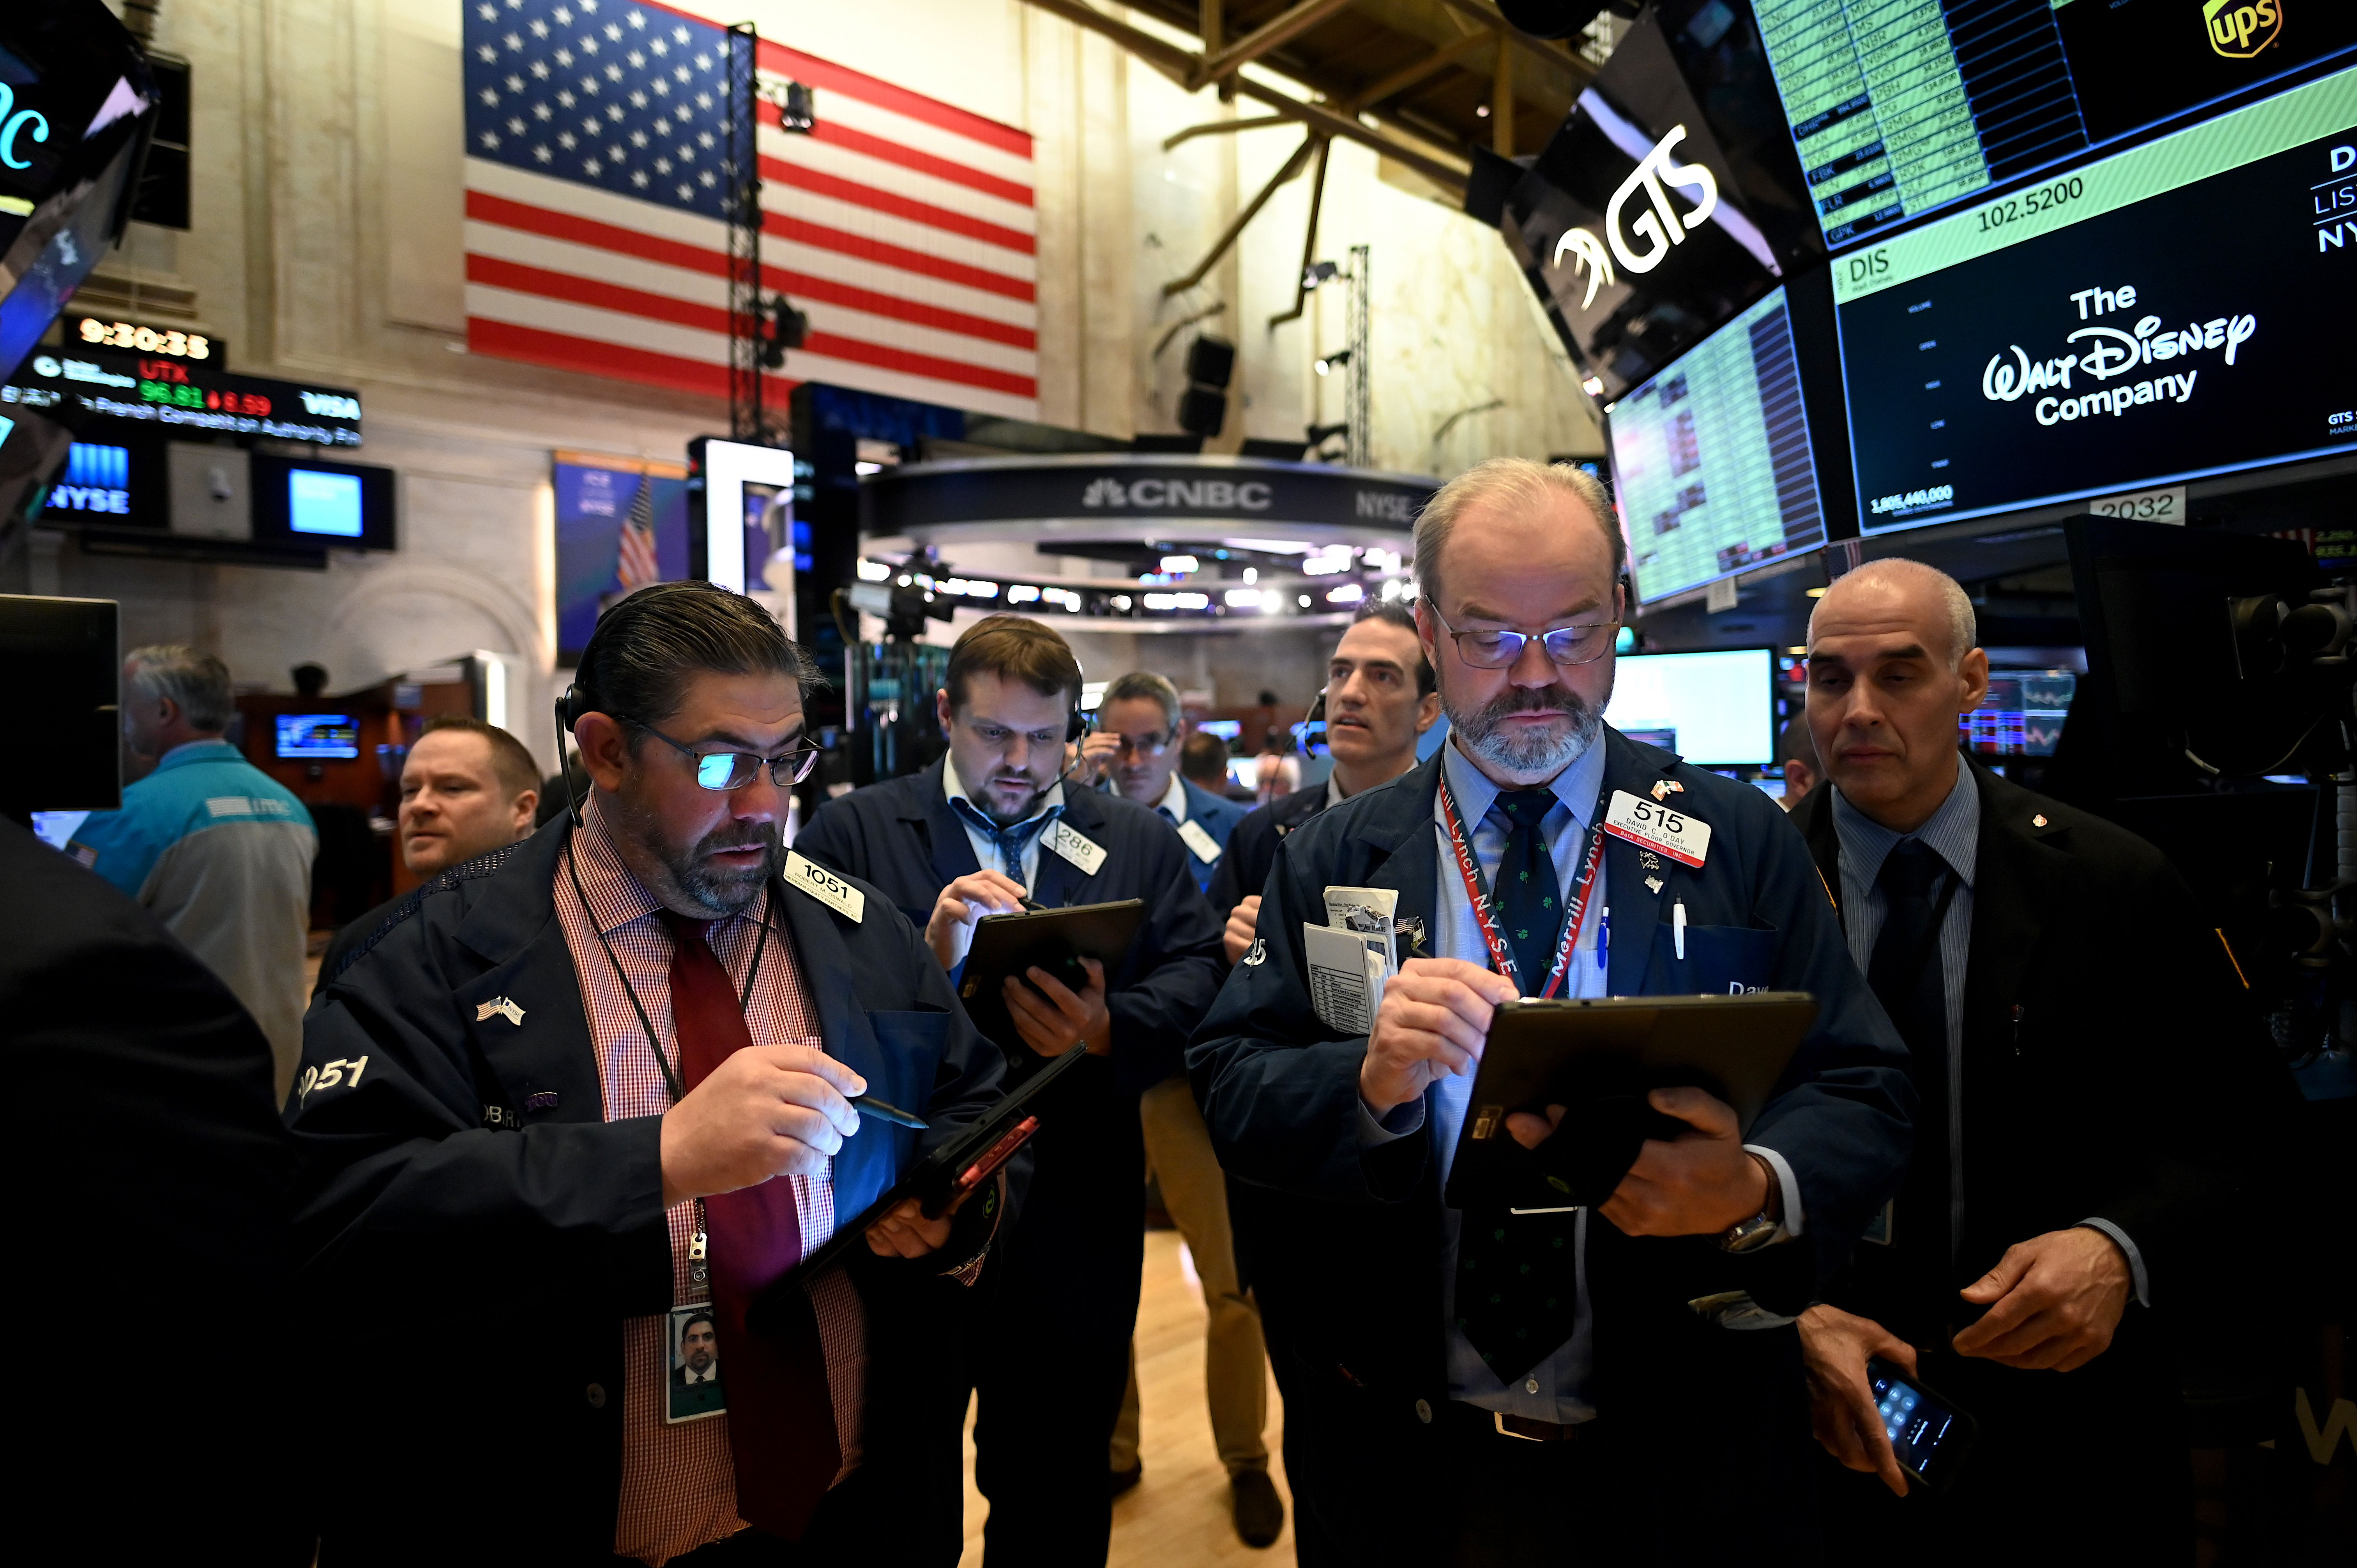 Traders work during the opening bell at the New York Stock Exchange (NYSE) on Monday, March 16.